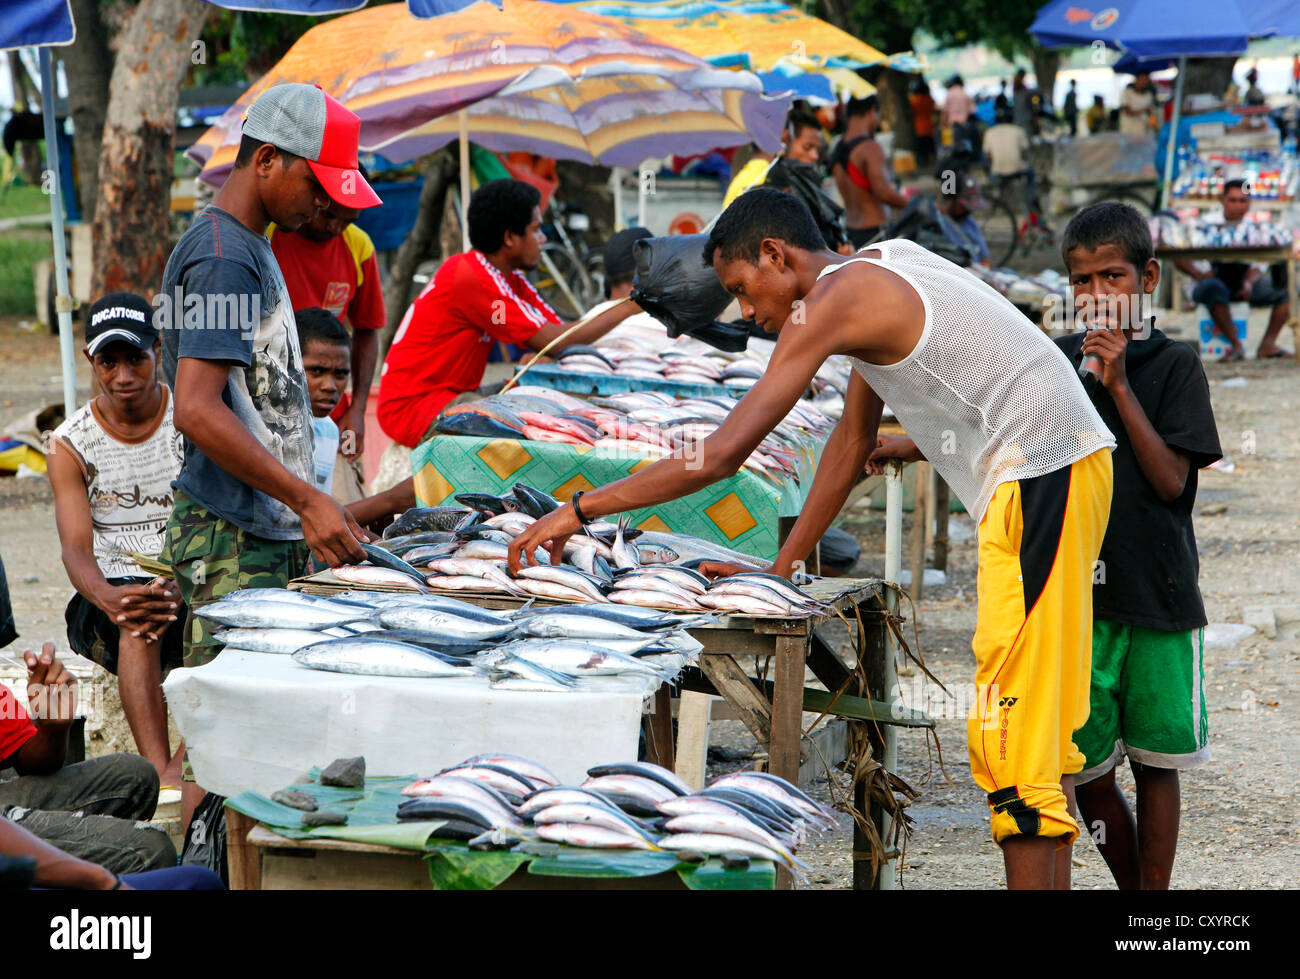 Trader selling fish, Colmera commercial district of Dili, capital of Timor Leste (East Timor) - Stock Image